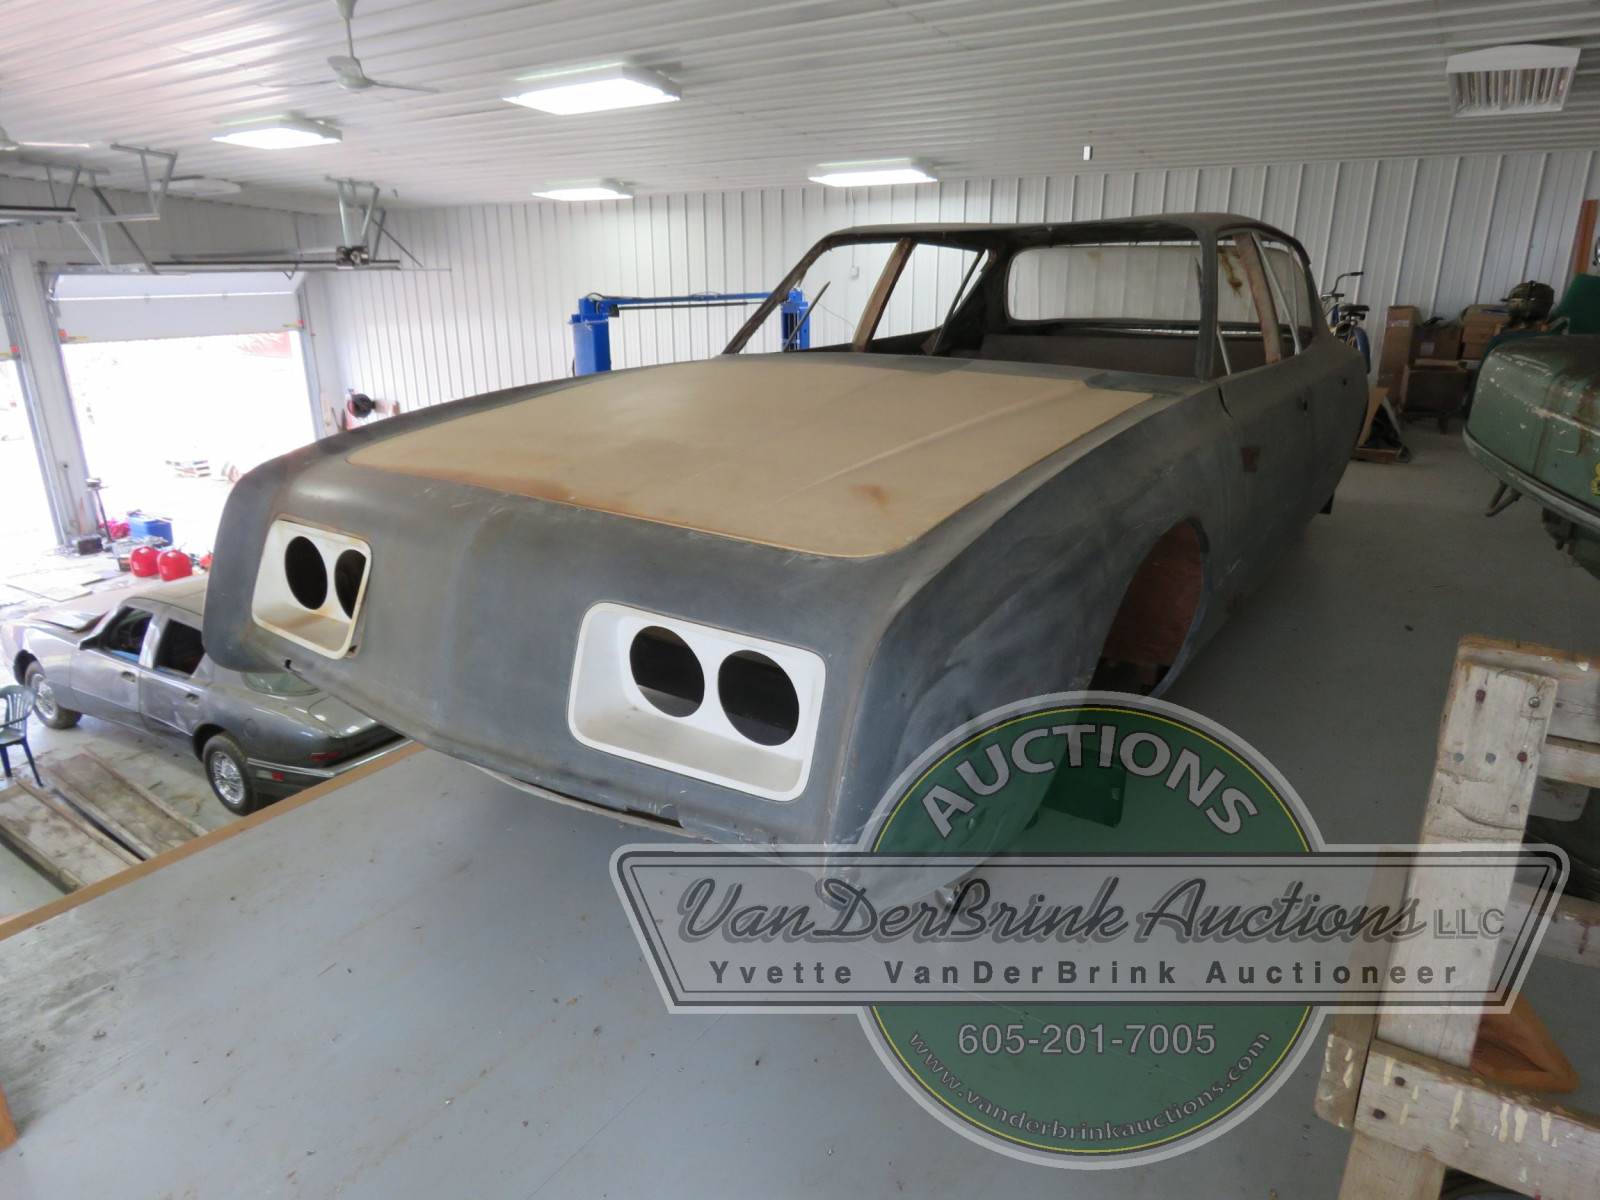 Rare Studebaker Avanti Prototype 4dr Engineering Body - Image 2